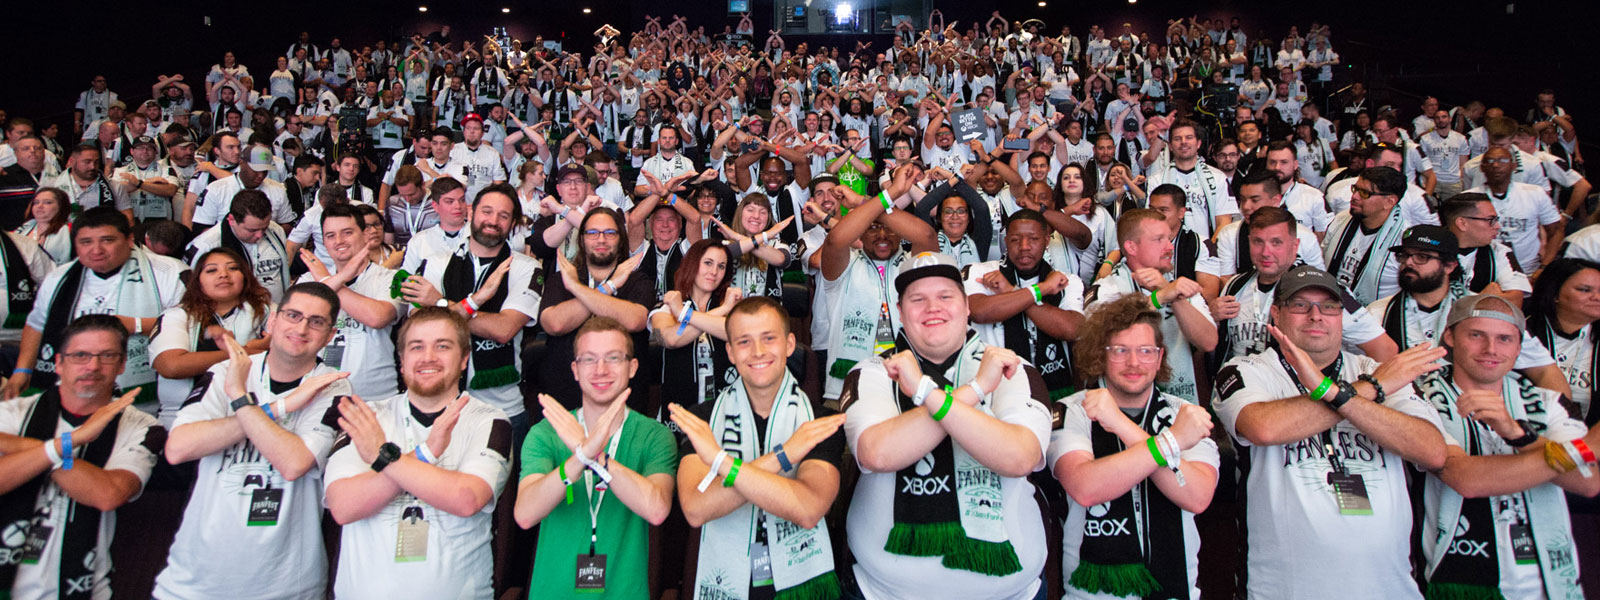 Xbox FanFest audience posing with their arms crossed in an X